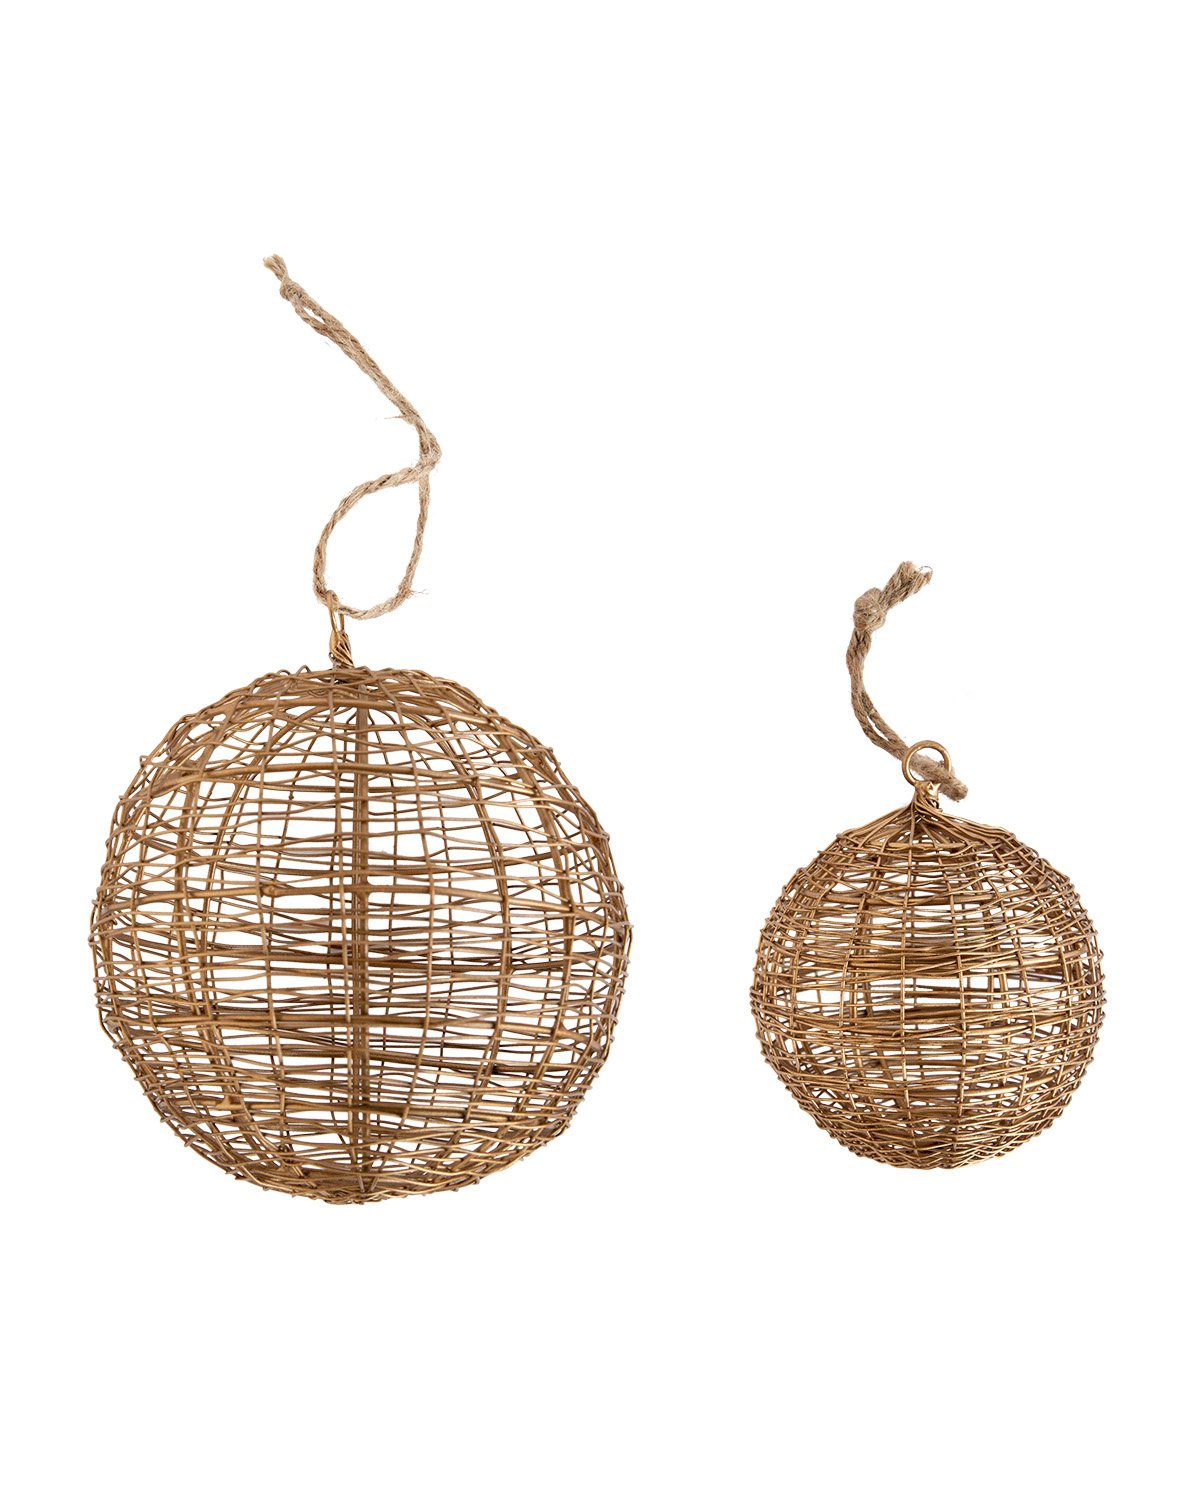 Wire_Ball_Ornaments_1.jpg